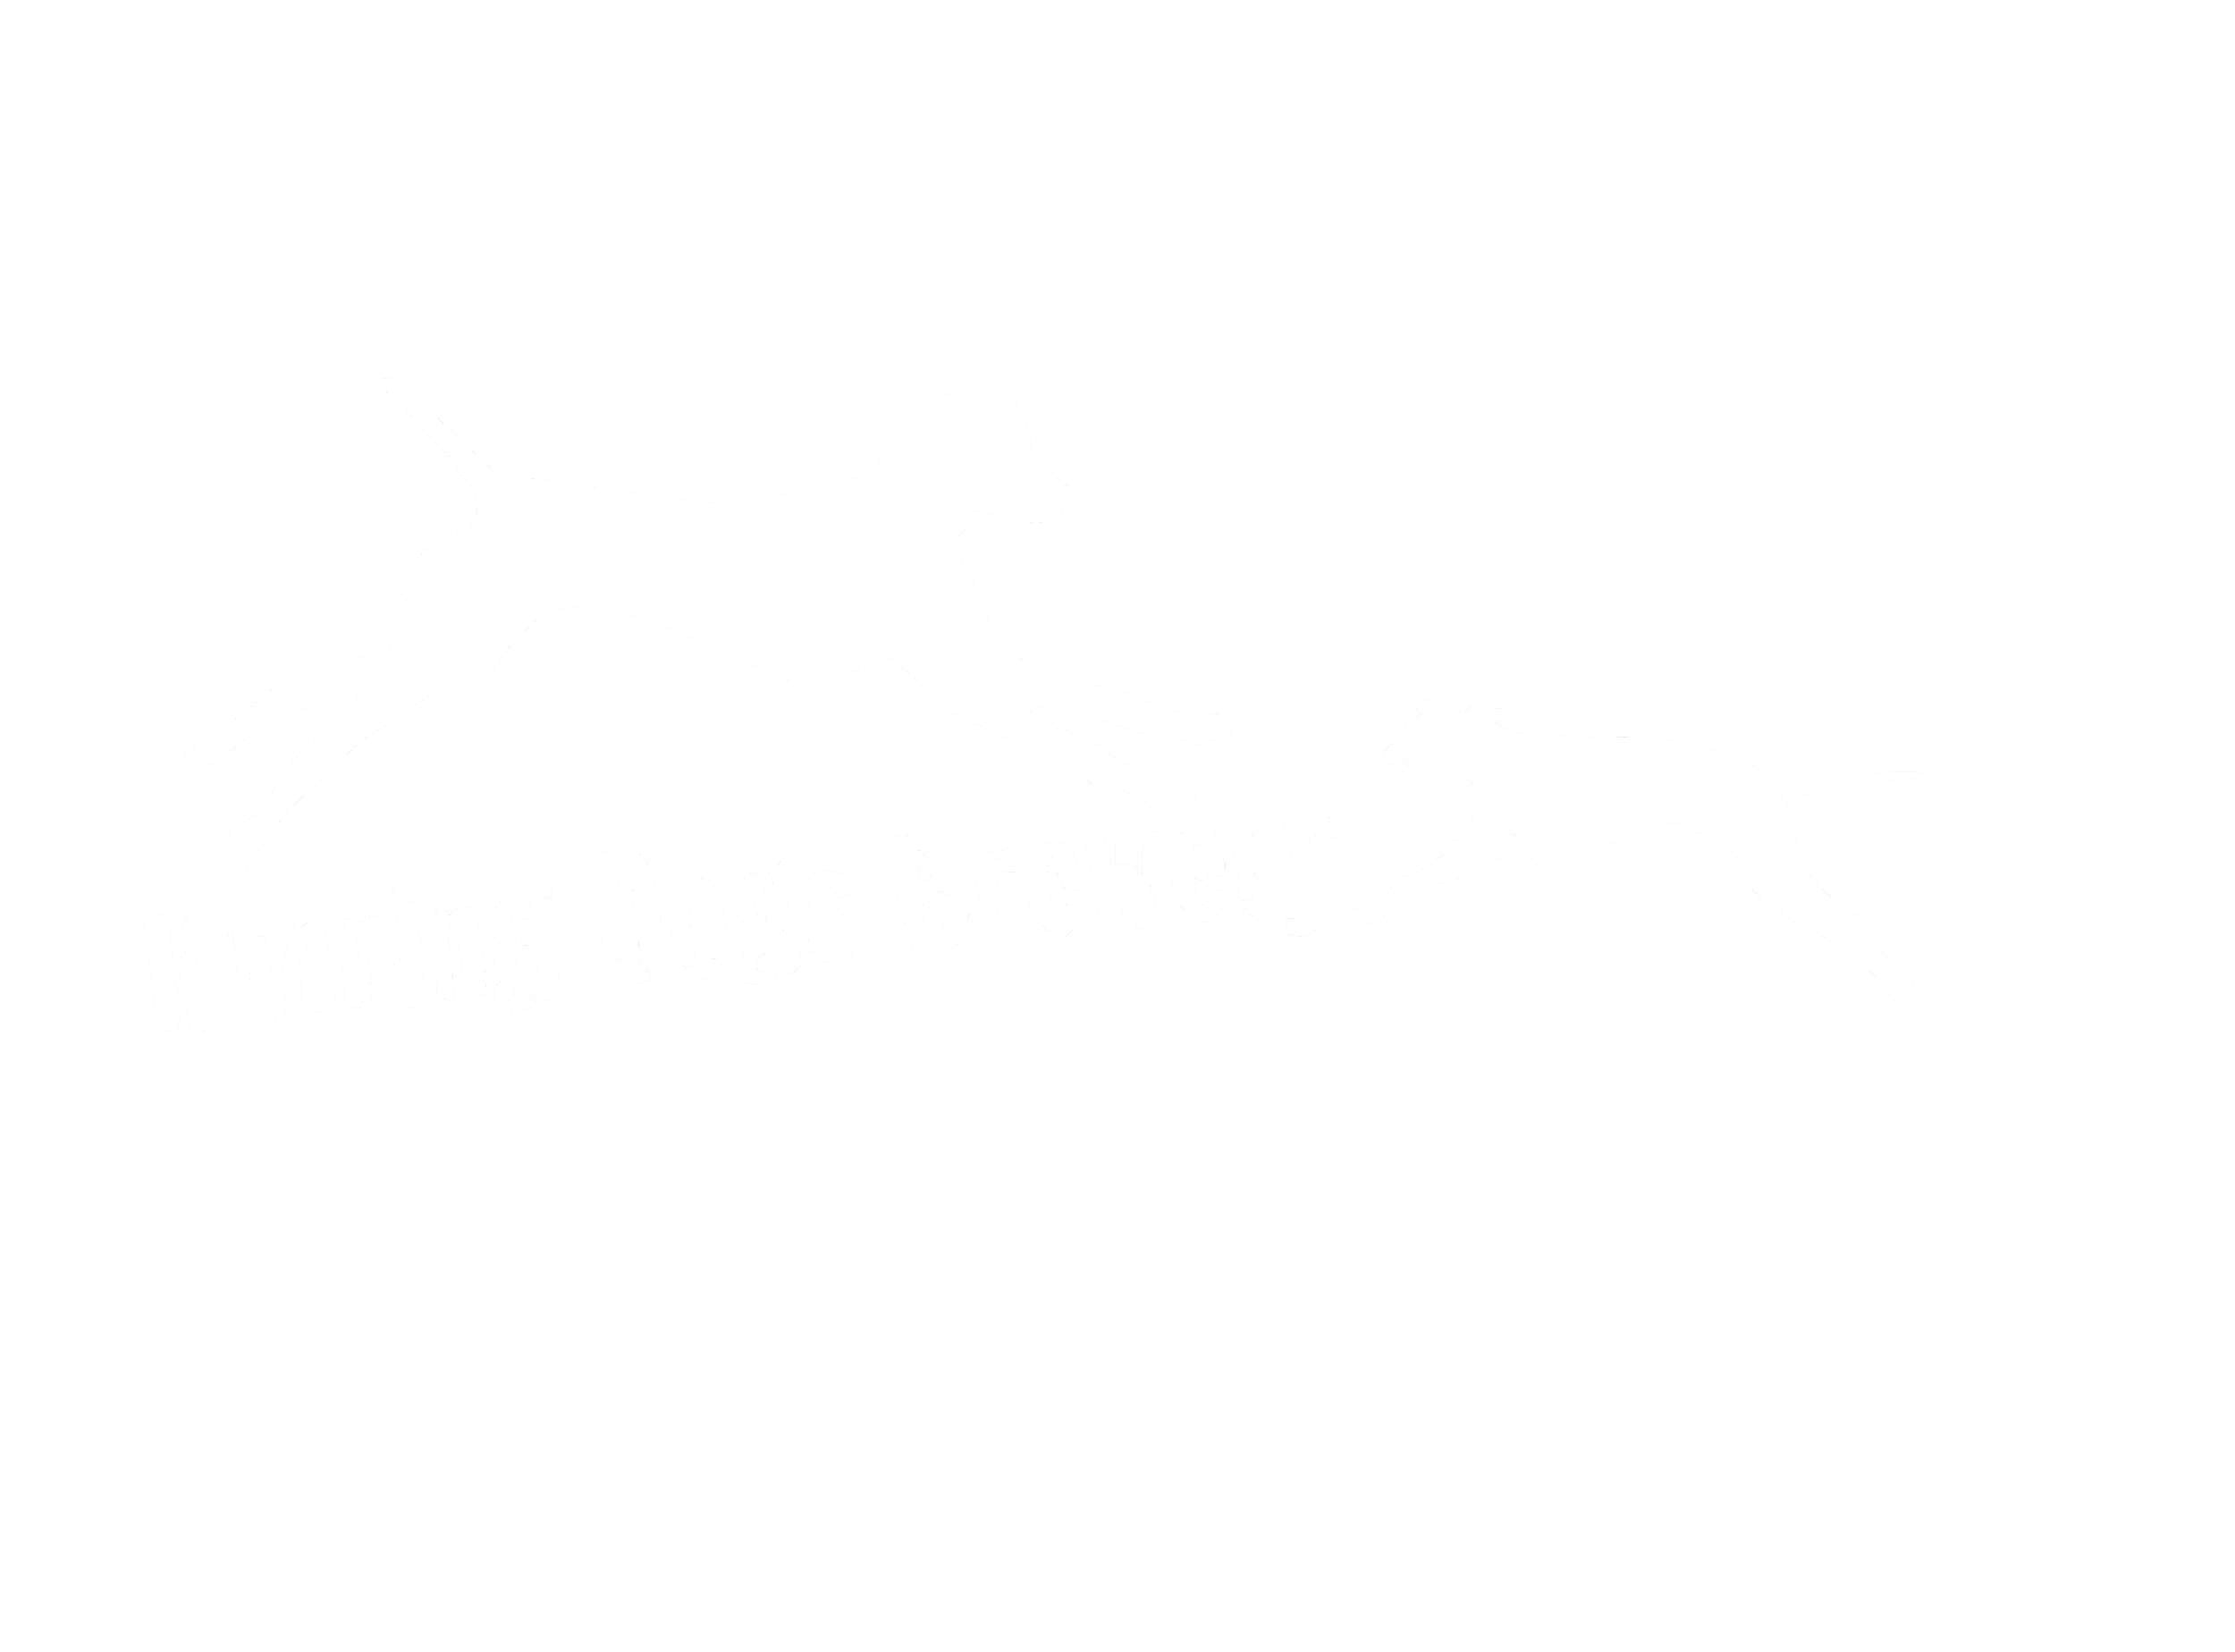 Running Dogs Brewery